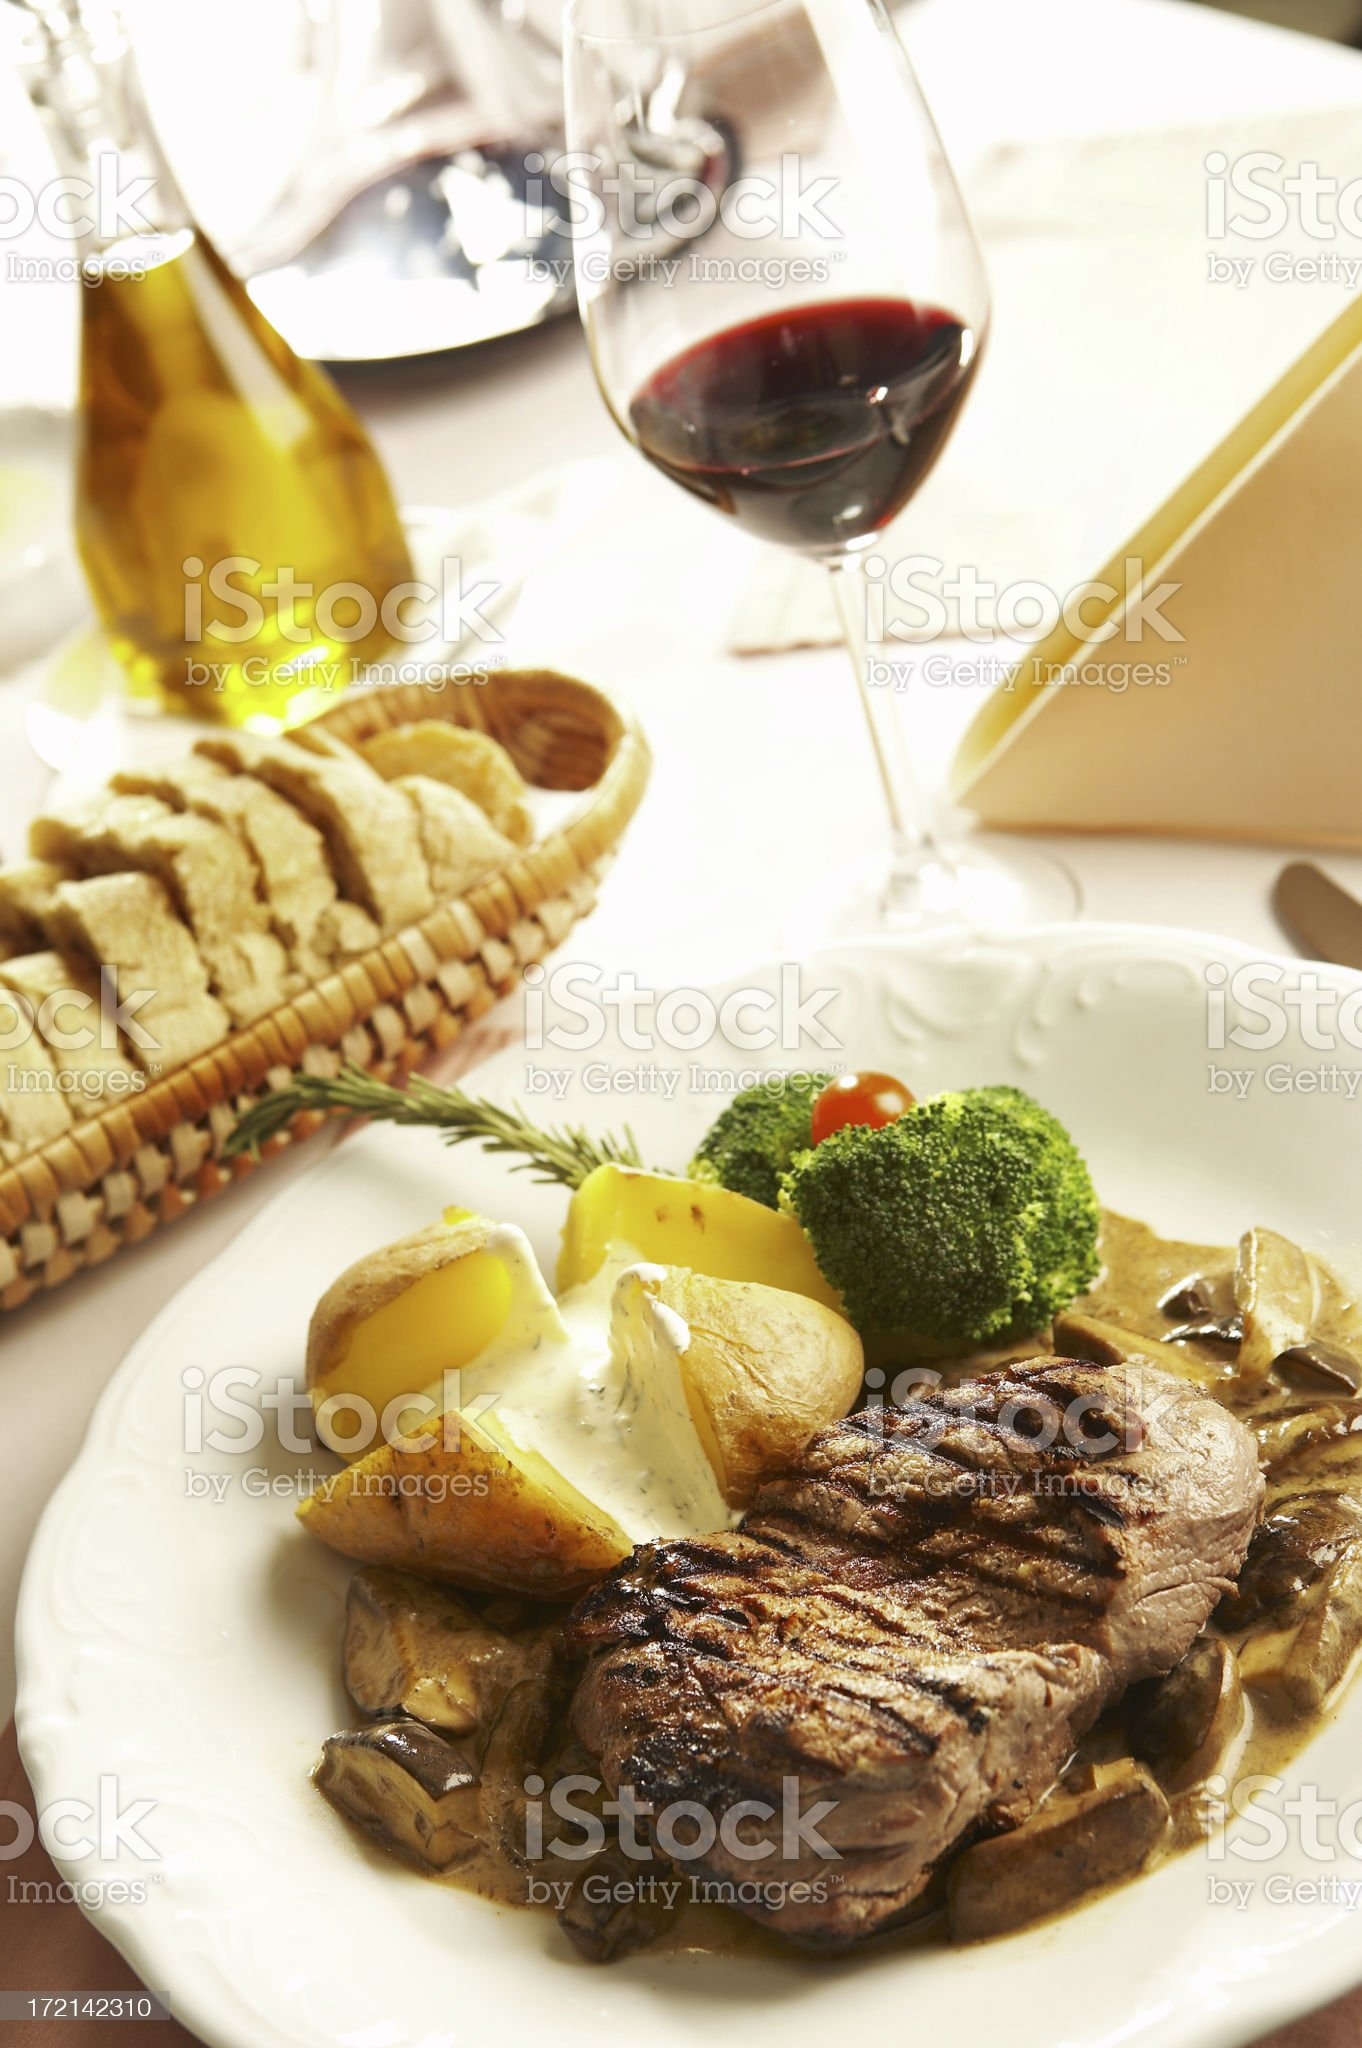 Sirloin steak with mushrooms royalty-free stock photo